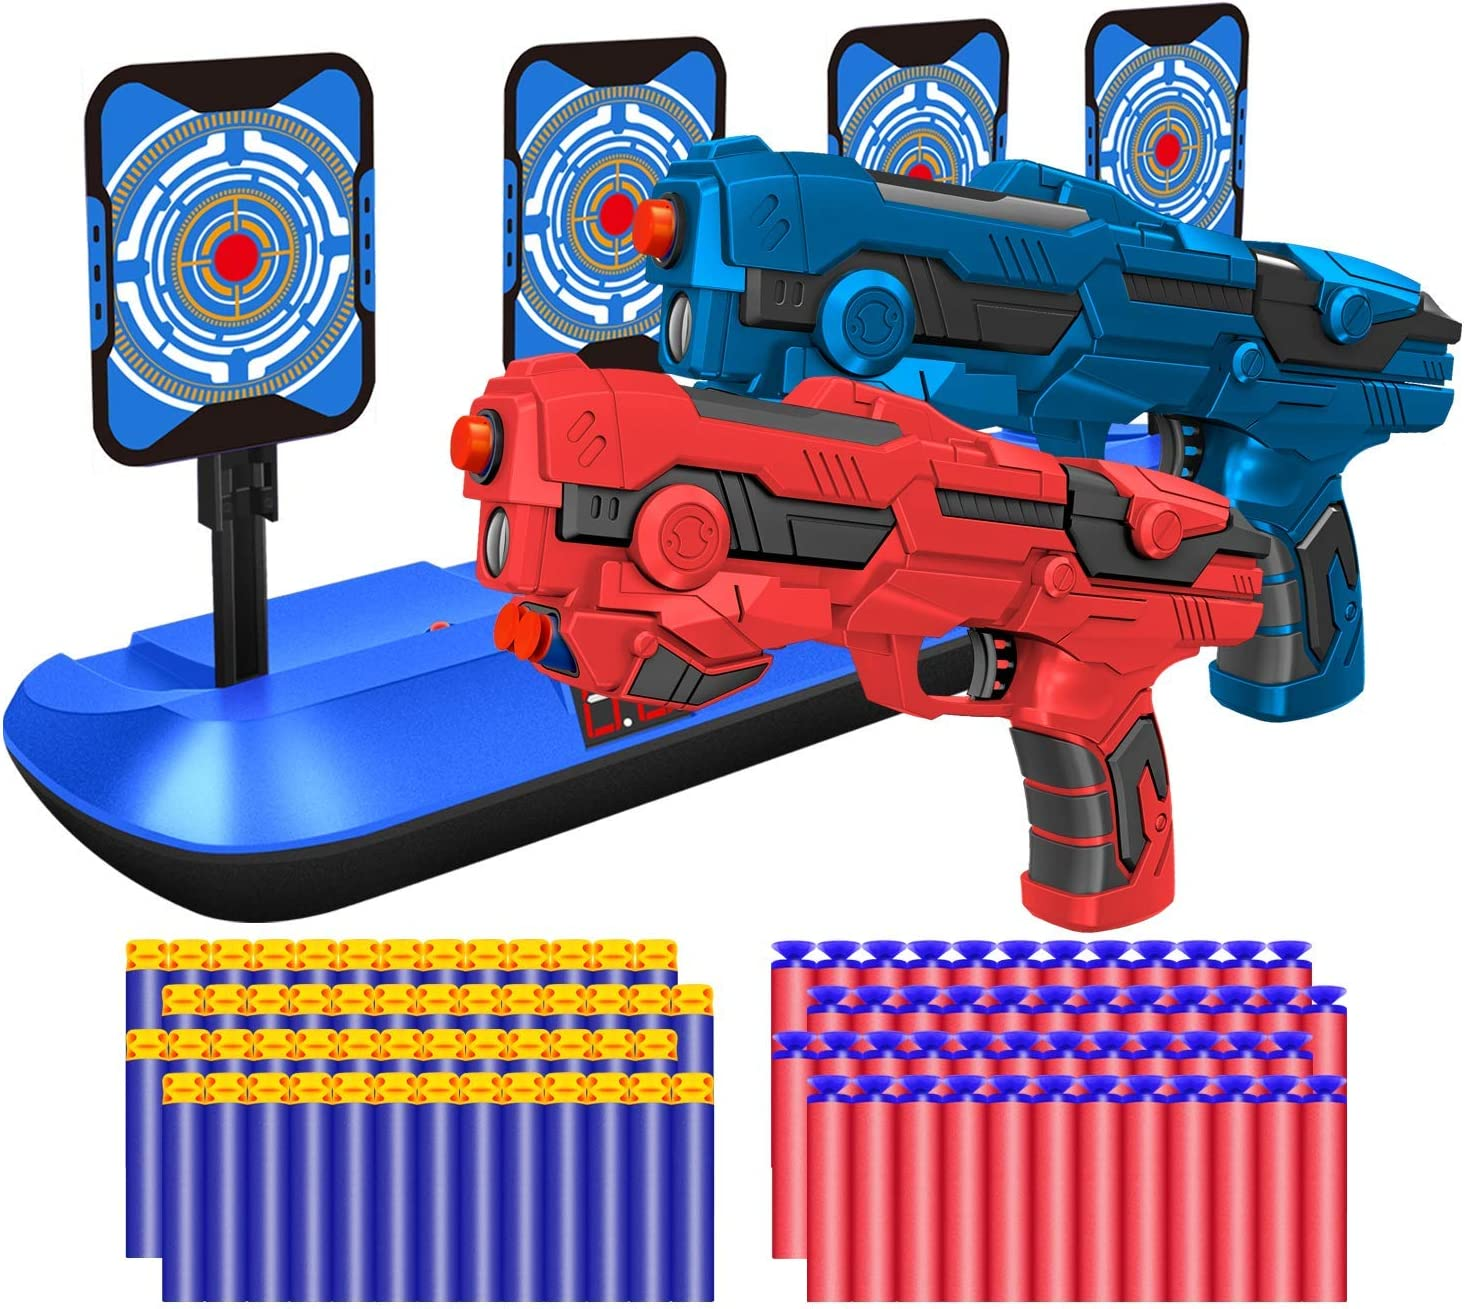 with 40 Pcs Refill Darts and 2 Hand Wrist Bands. BOUNHOHE Electronic Running Target Scoring Auto Reset Shooting Digital Target for Nerf Guns